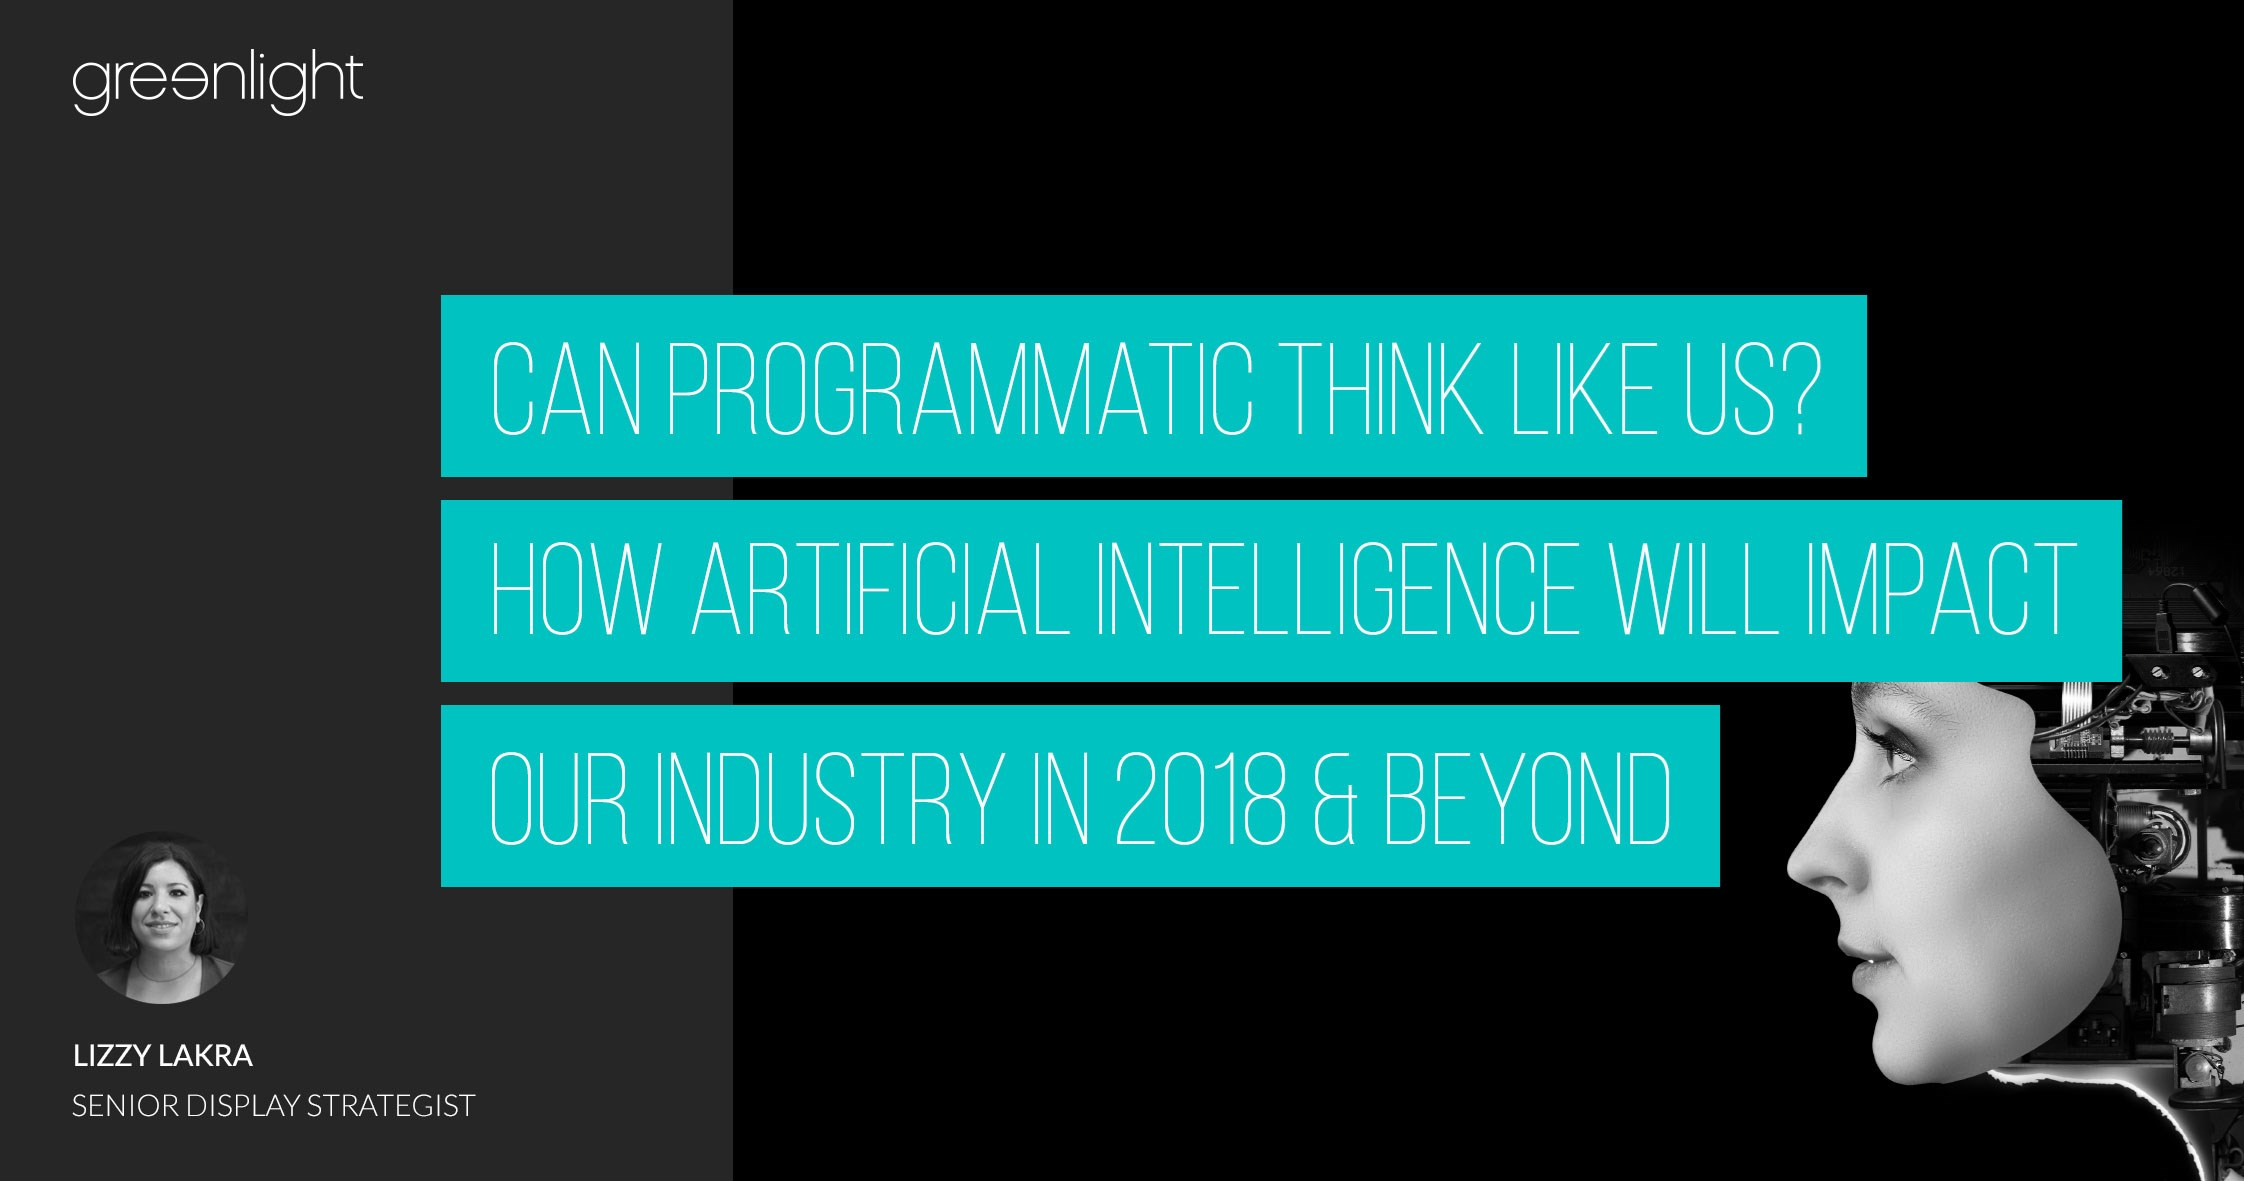 Can Programmatic Think Like Us? How Artificial Intelligence Will Impact Our Industry In 2018 & Beyond